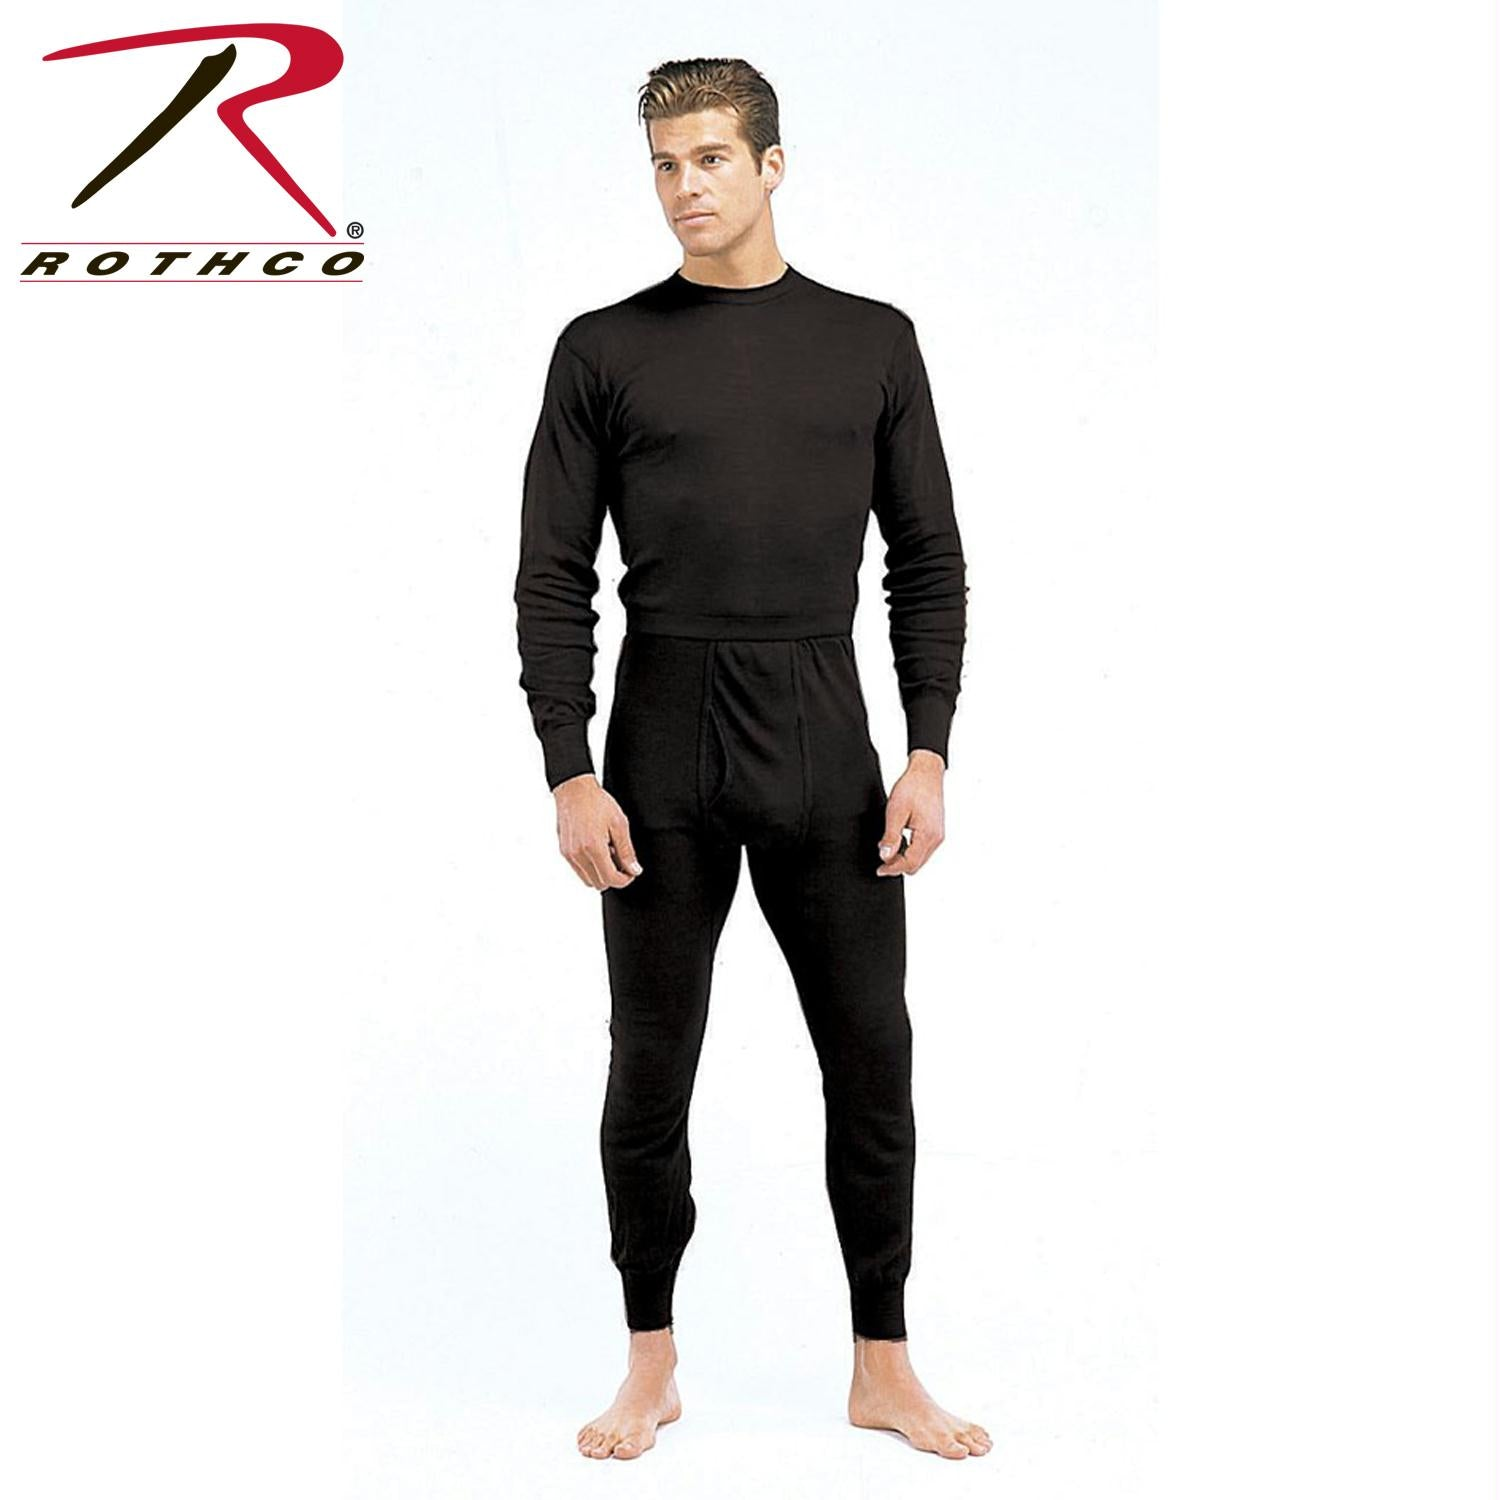 Rothco Single Layer Poly Underwear Tops - Black / XL